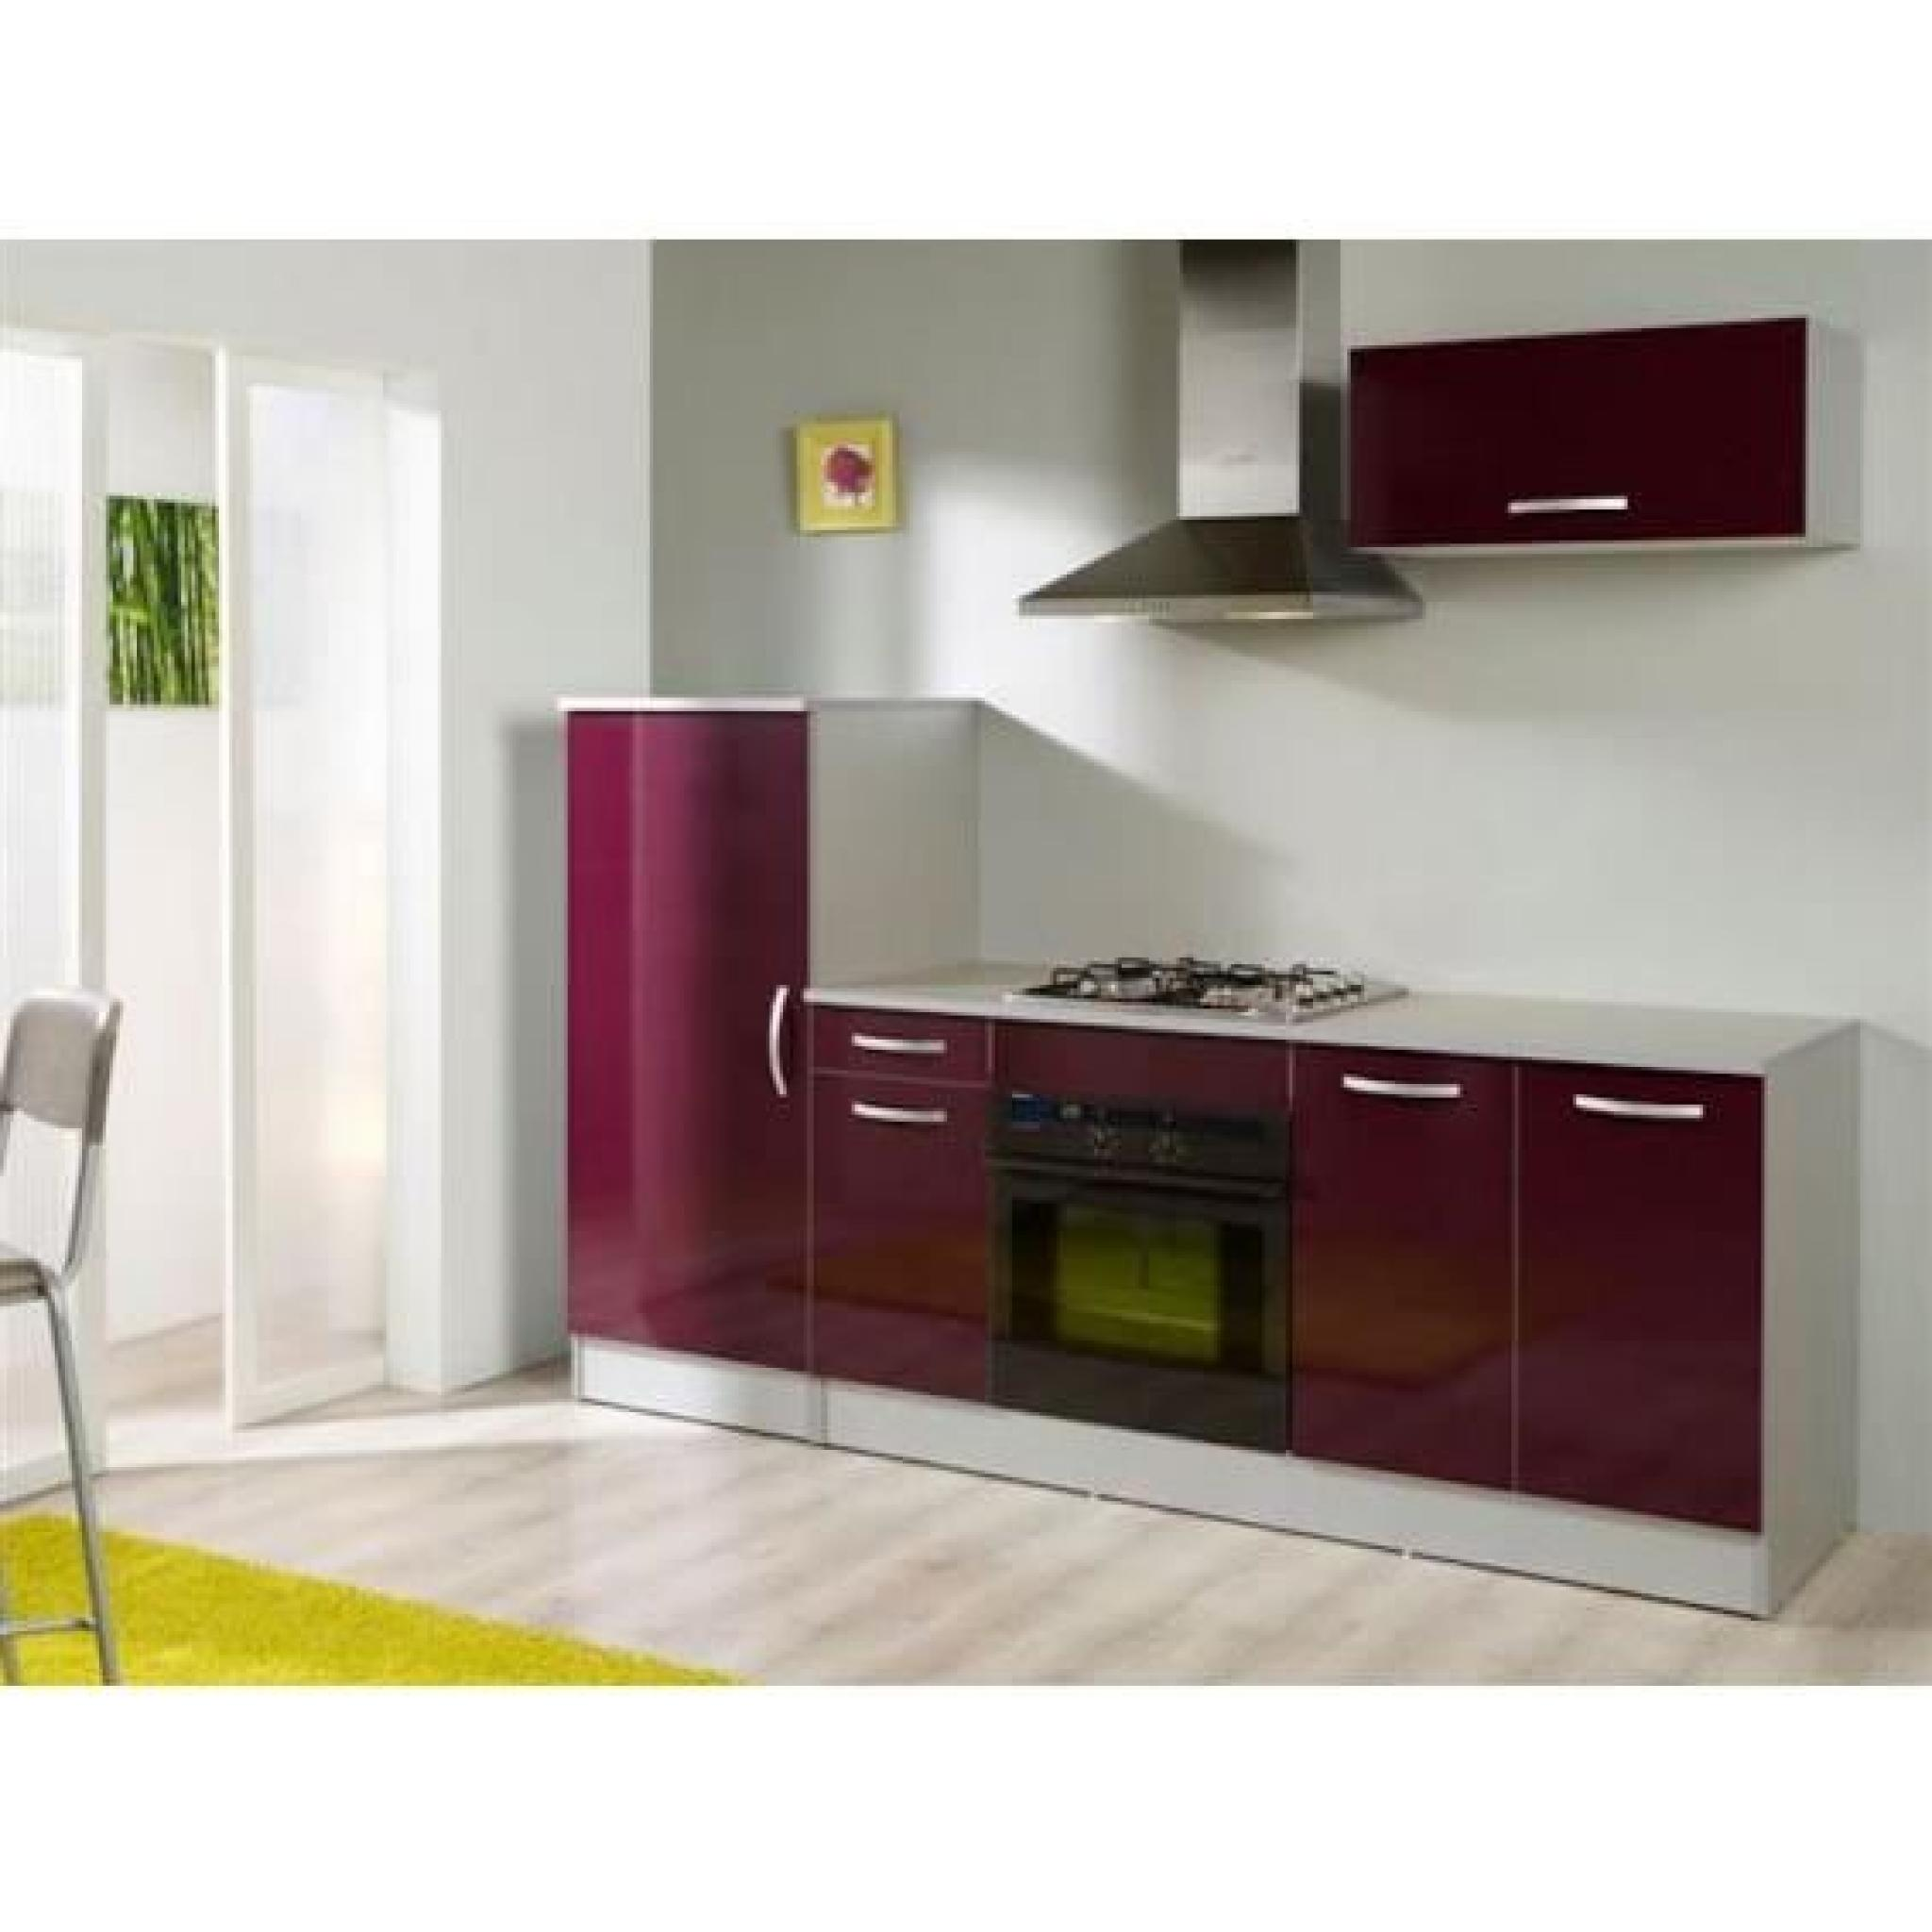 rock ensemble de cuisine aubergine achat vente cuisine. Black Bedroom Furniture Sets. Home Design Ideas